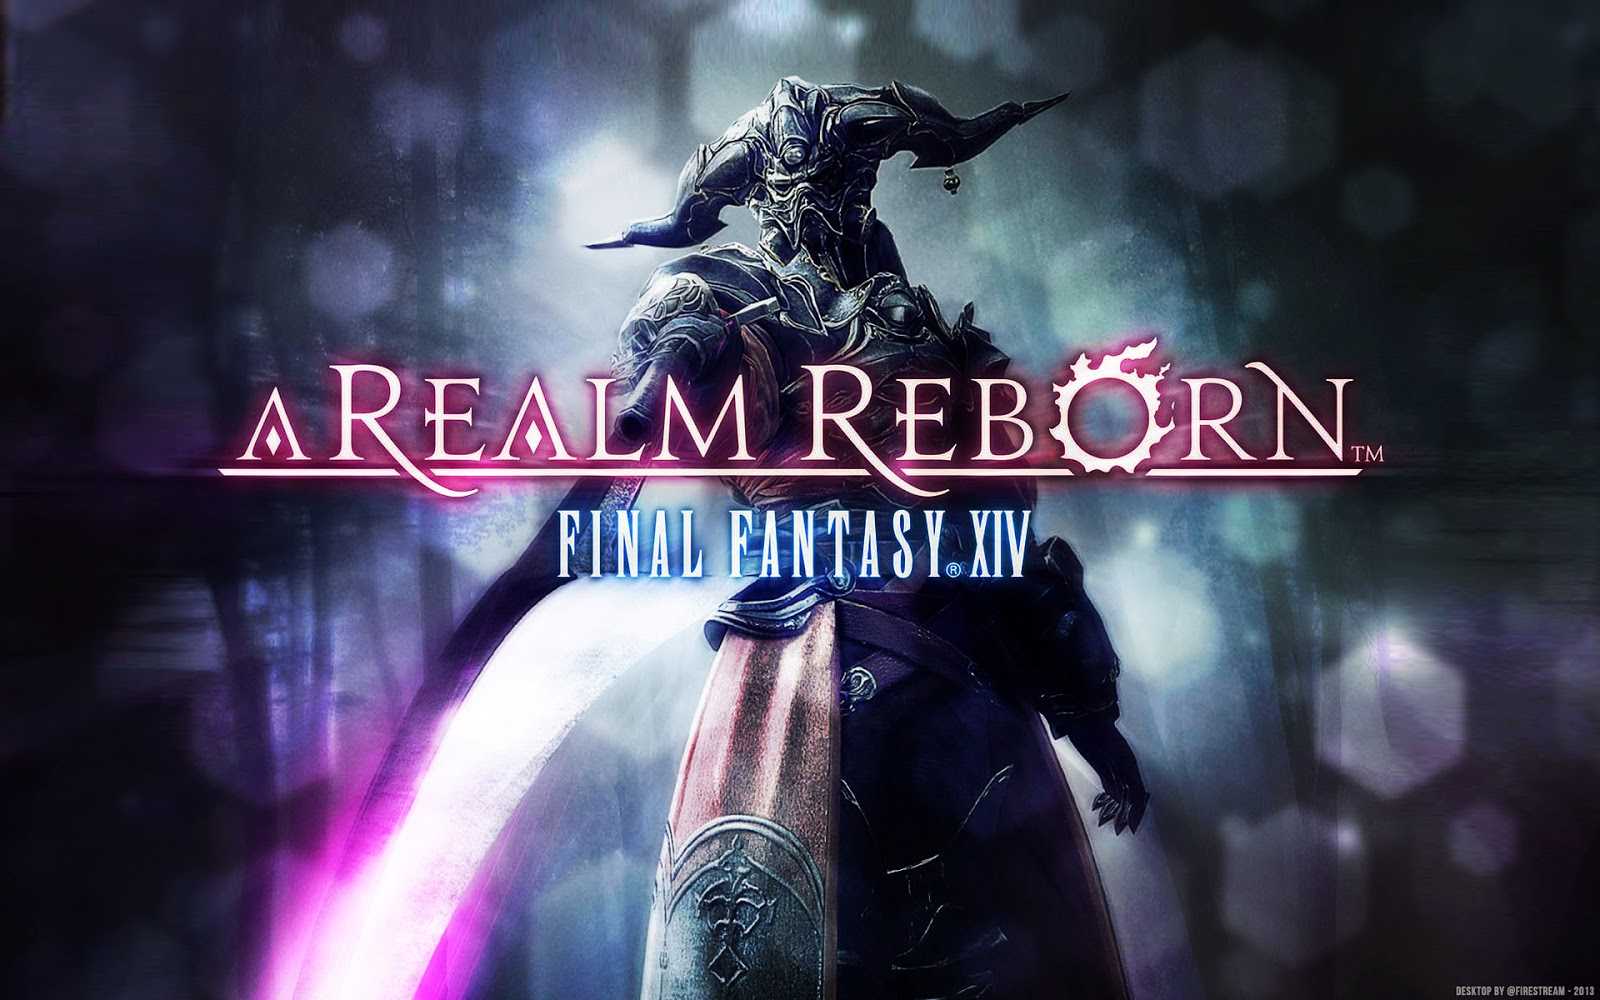 Weeb dreams and figurines : Final Fantasy XIV ARR Review